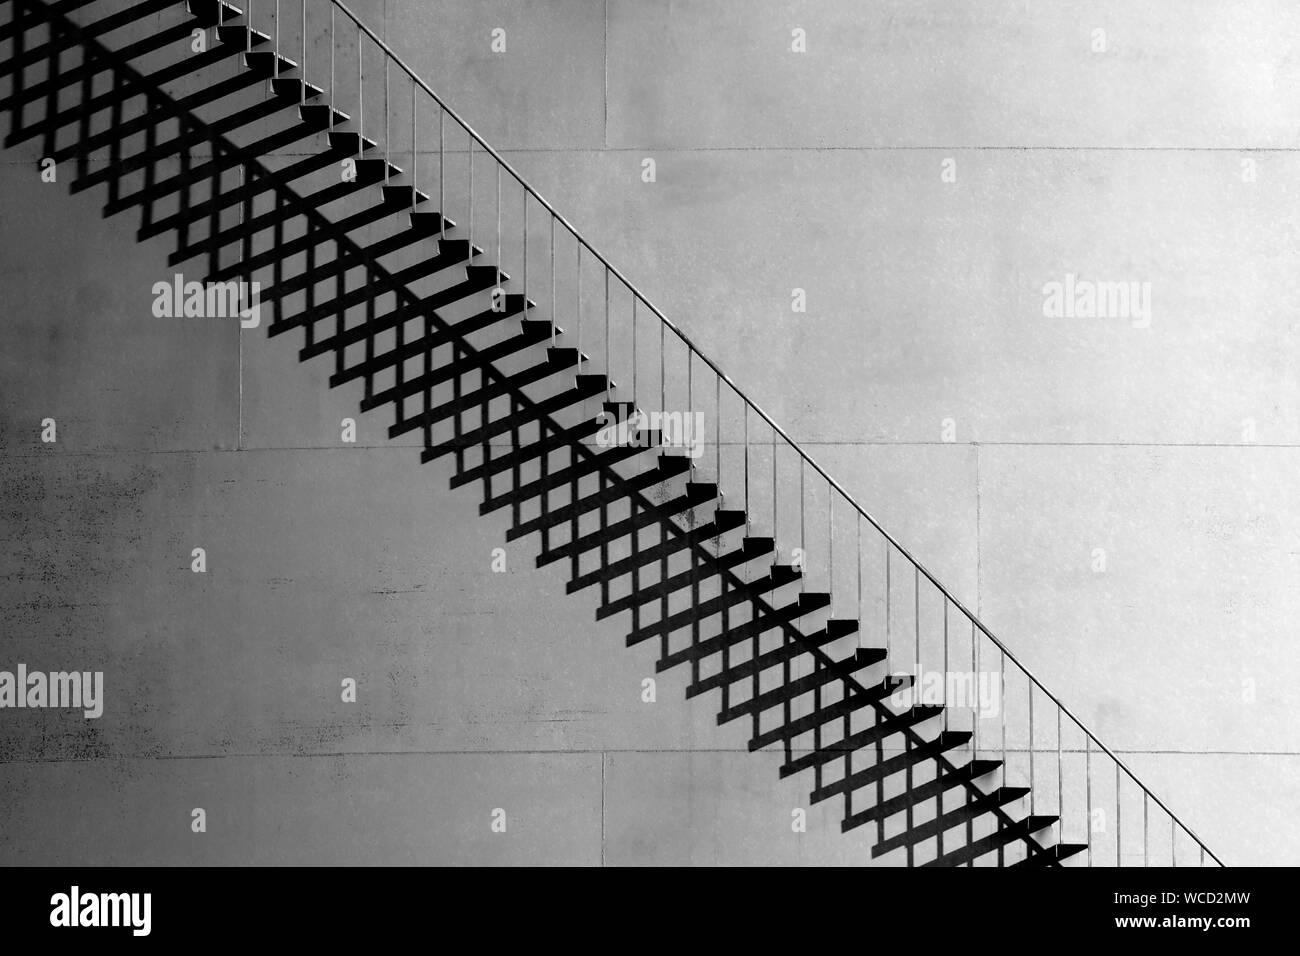 Metal Steps Outside Building Stock Photo Alamy   Metal Steps For Outside   Loading Dock   Covered   Round   Easy   Outdoors